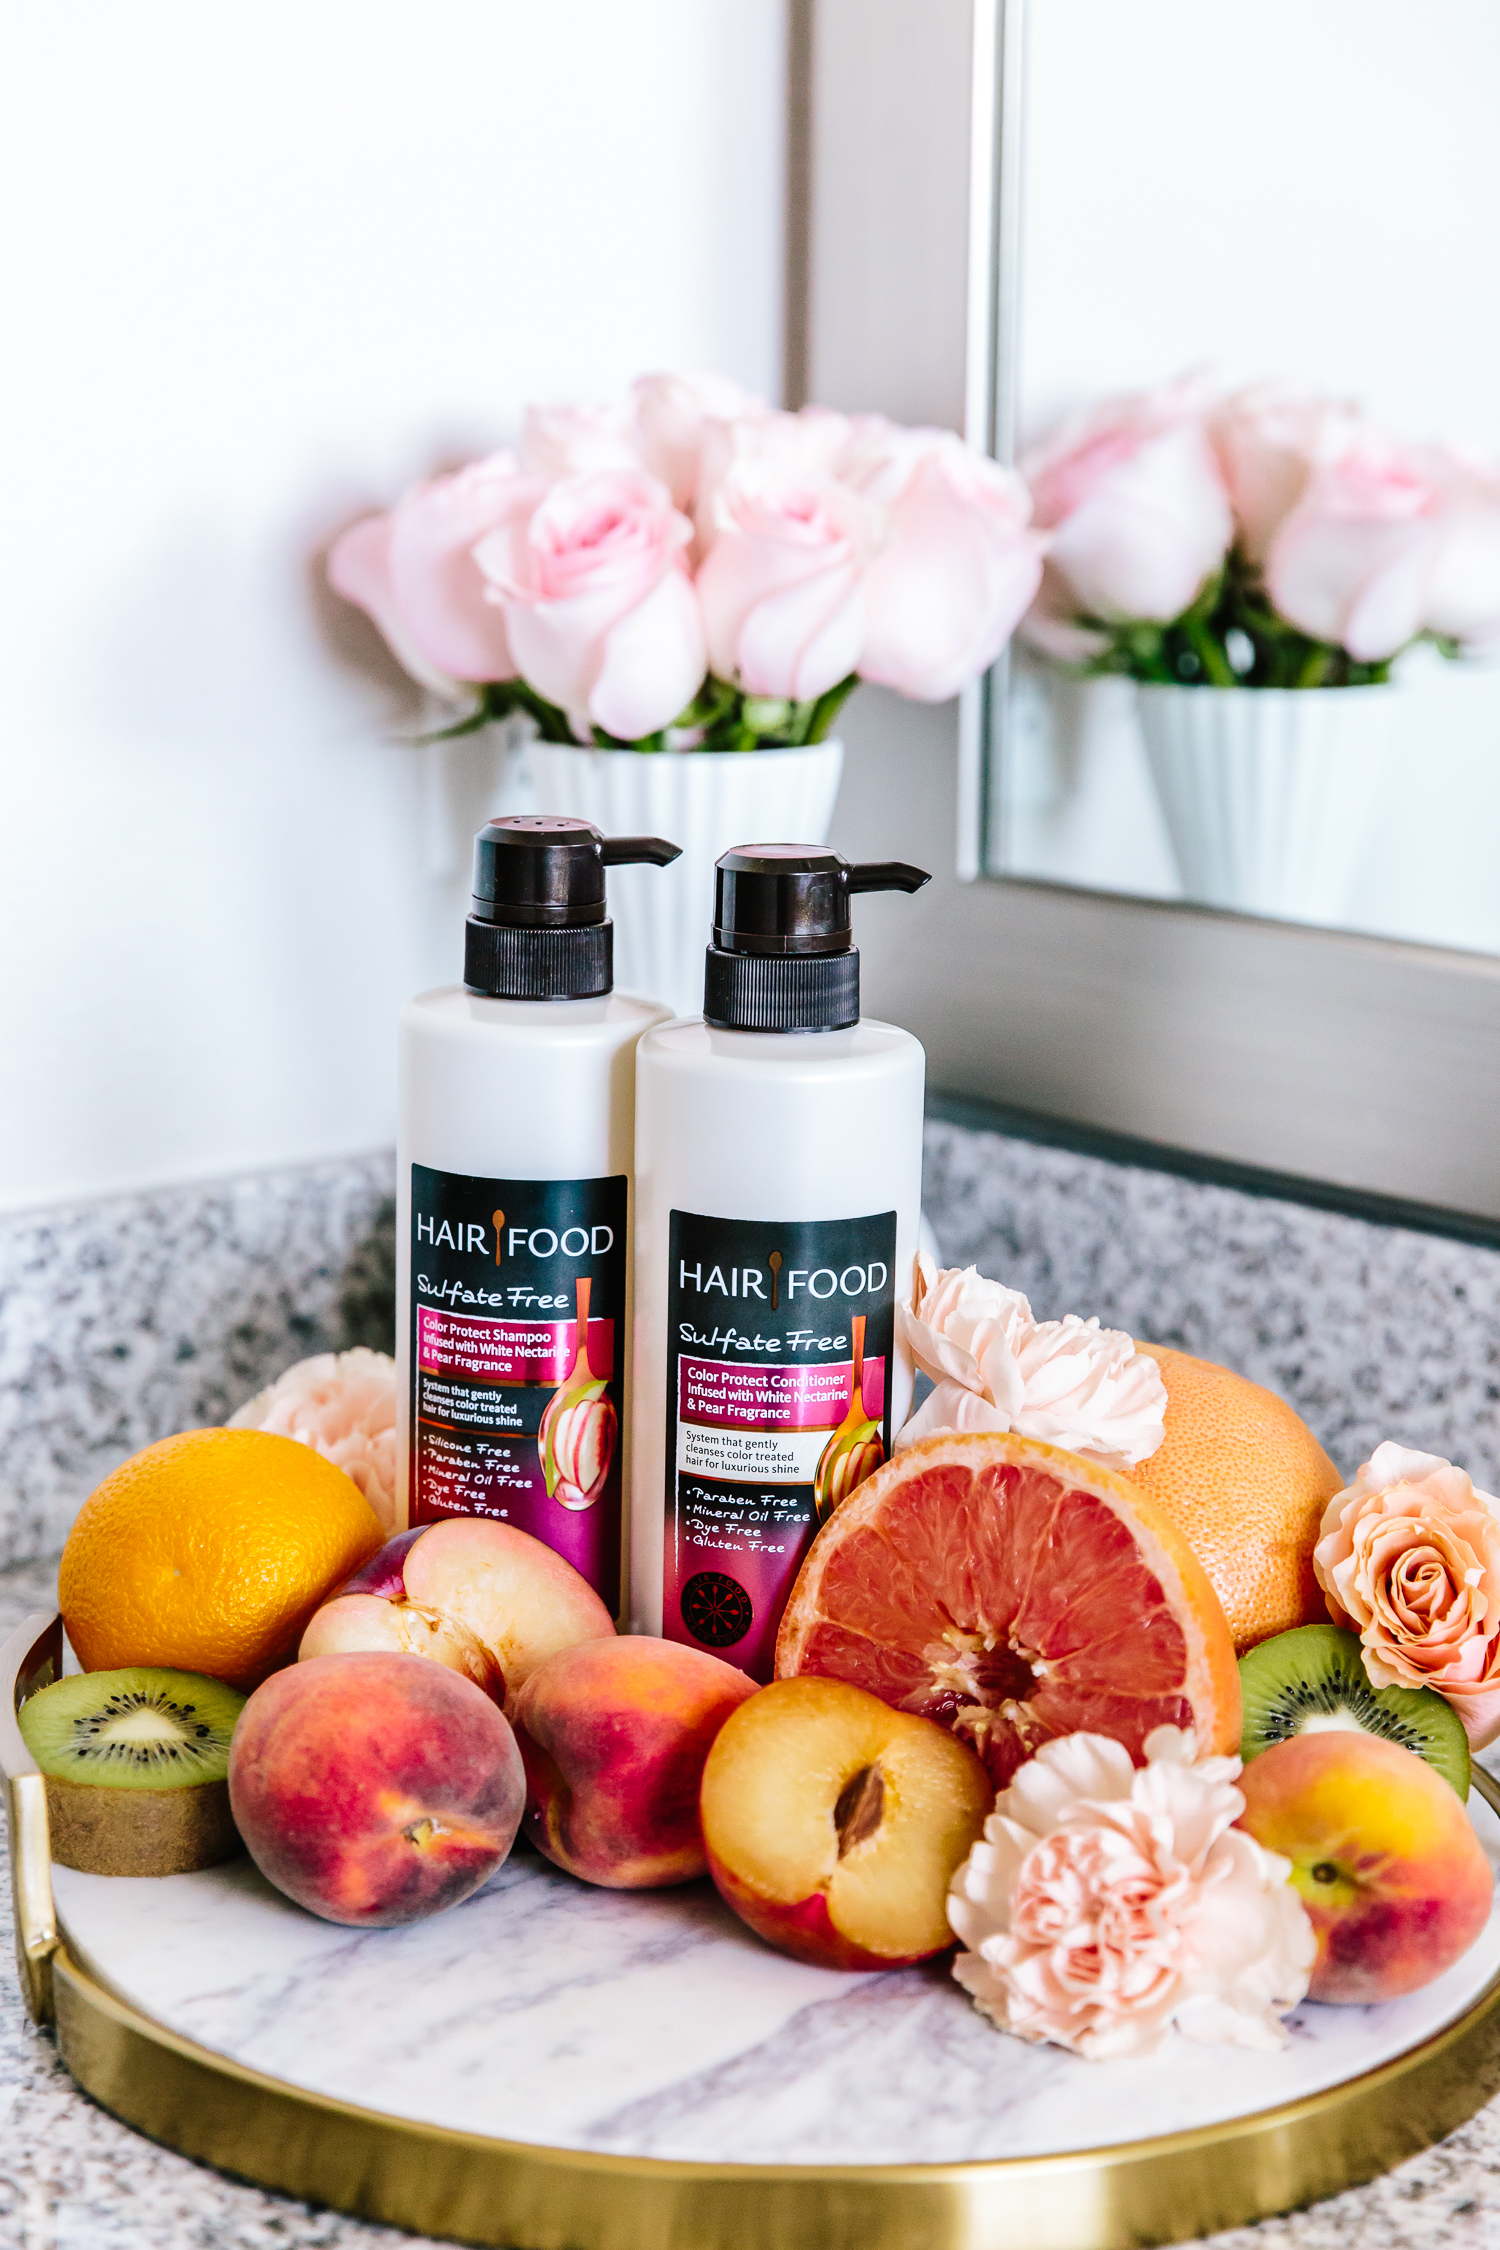 hair food, shampoo and conditioner, hair care